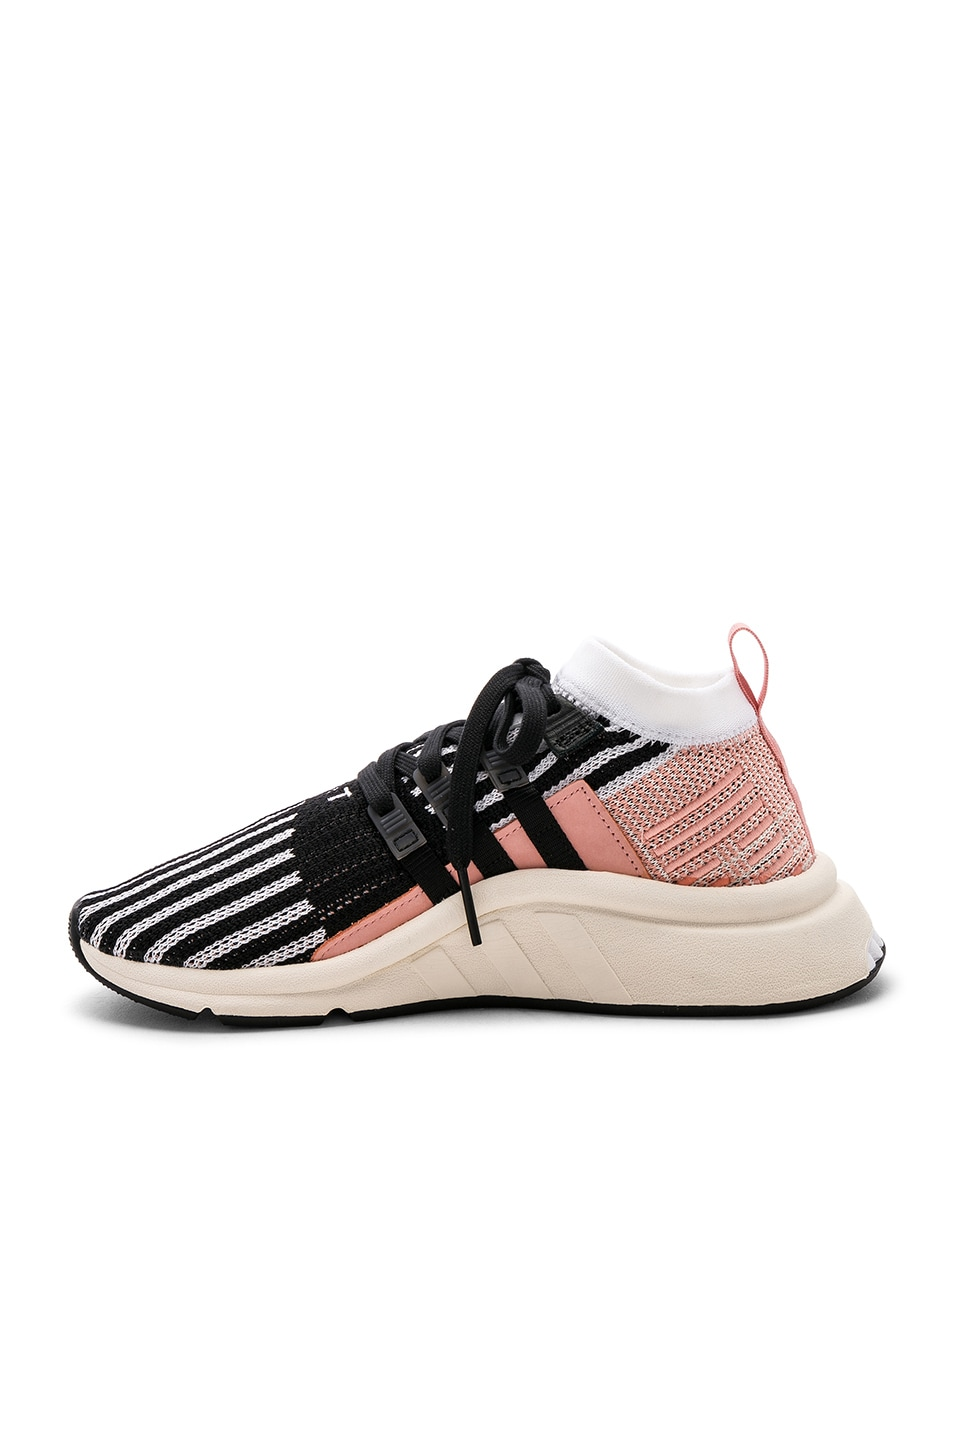 free shipping adidas Originals EQT Support Mid White & Black & Trace Pink